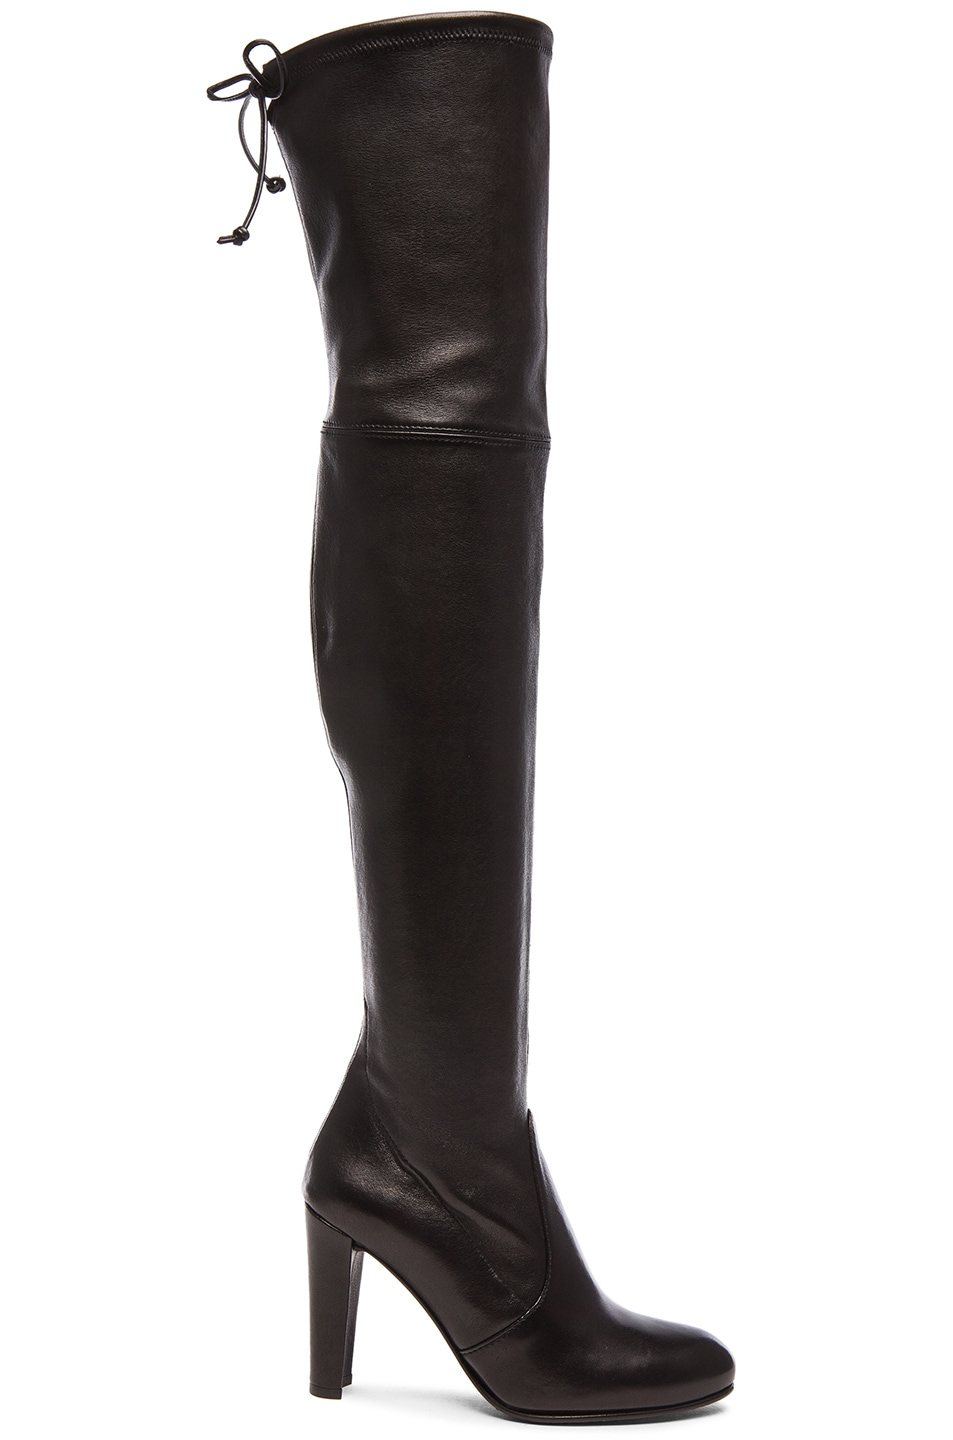 Image 1 of Stuart Weitzman Stretch Leather Highland Boots in Nero